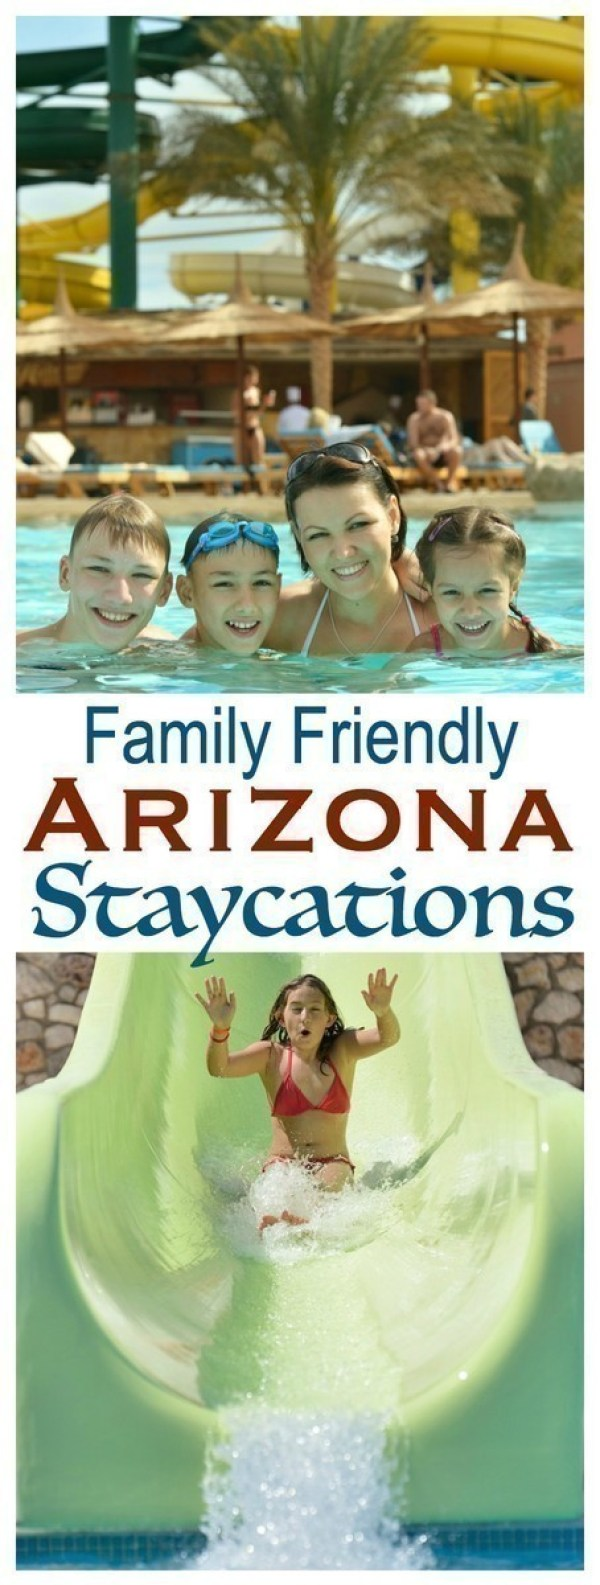 Look no further for kid friendly Arizona staycations - here are some of our favorite places to beat the summer heat!